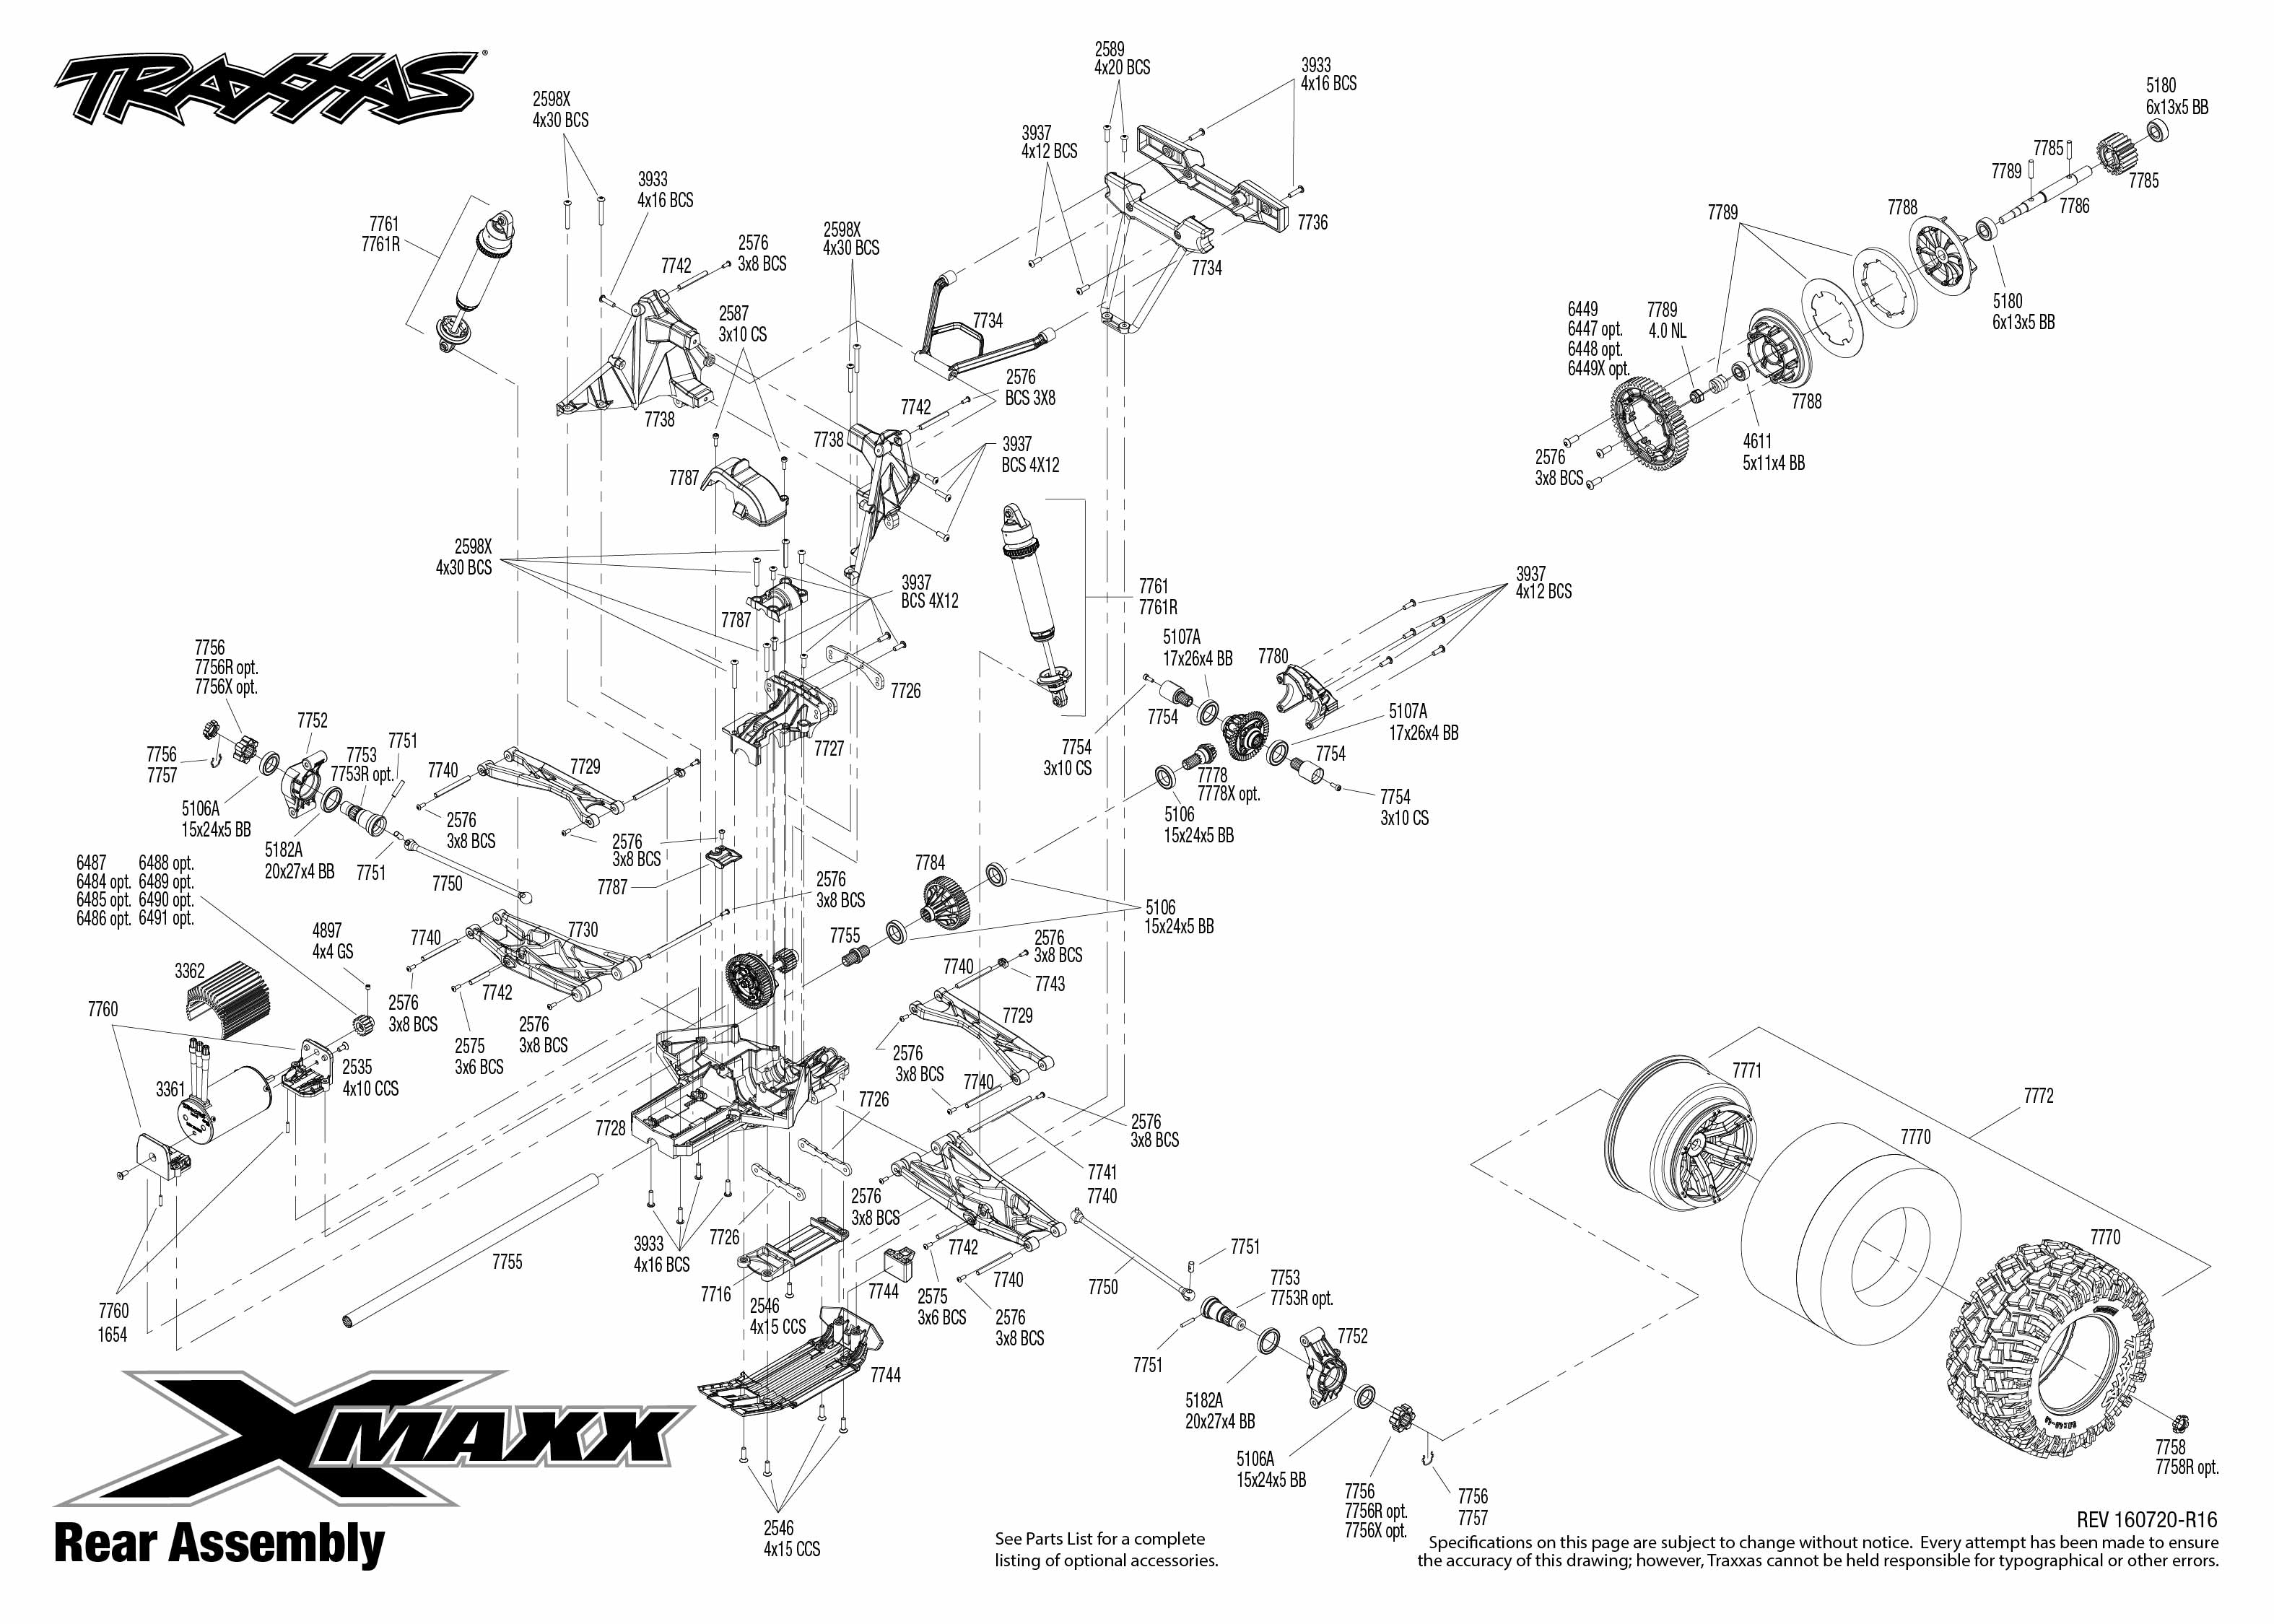 Traxxas Parts Diagram Traxxas Parts List Slash 4x4